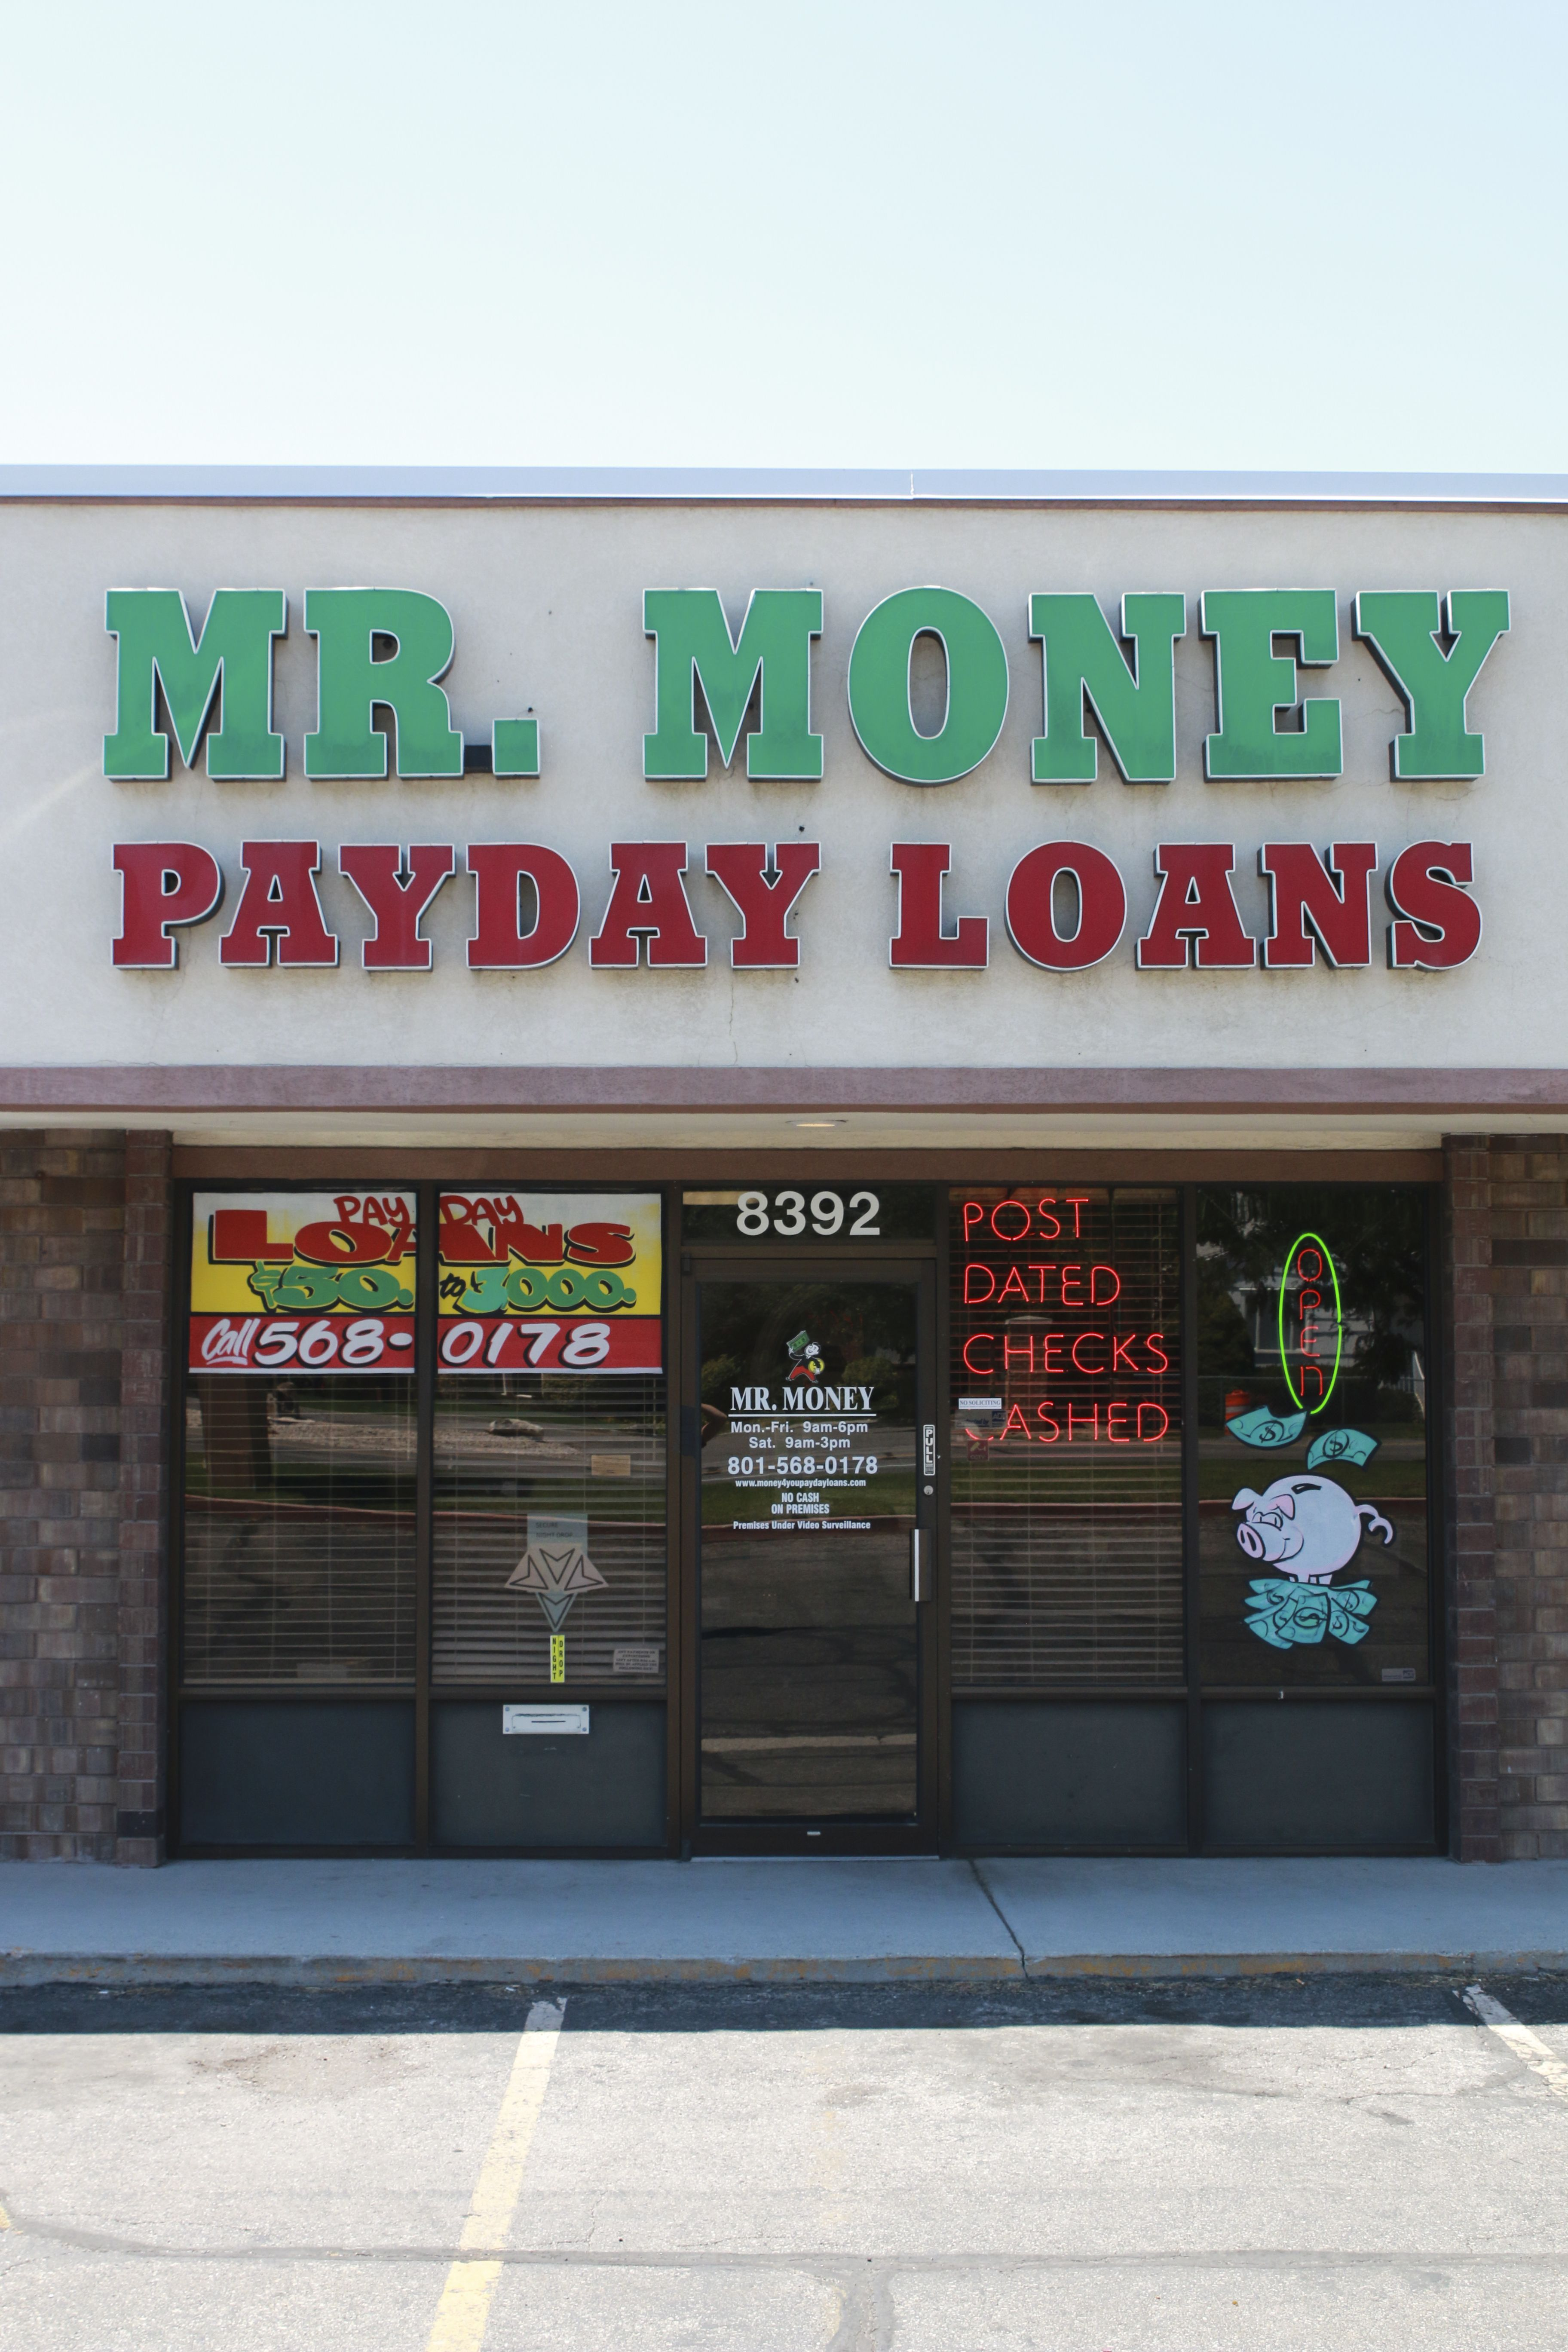 California payday loans regulations picture 6